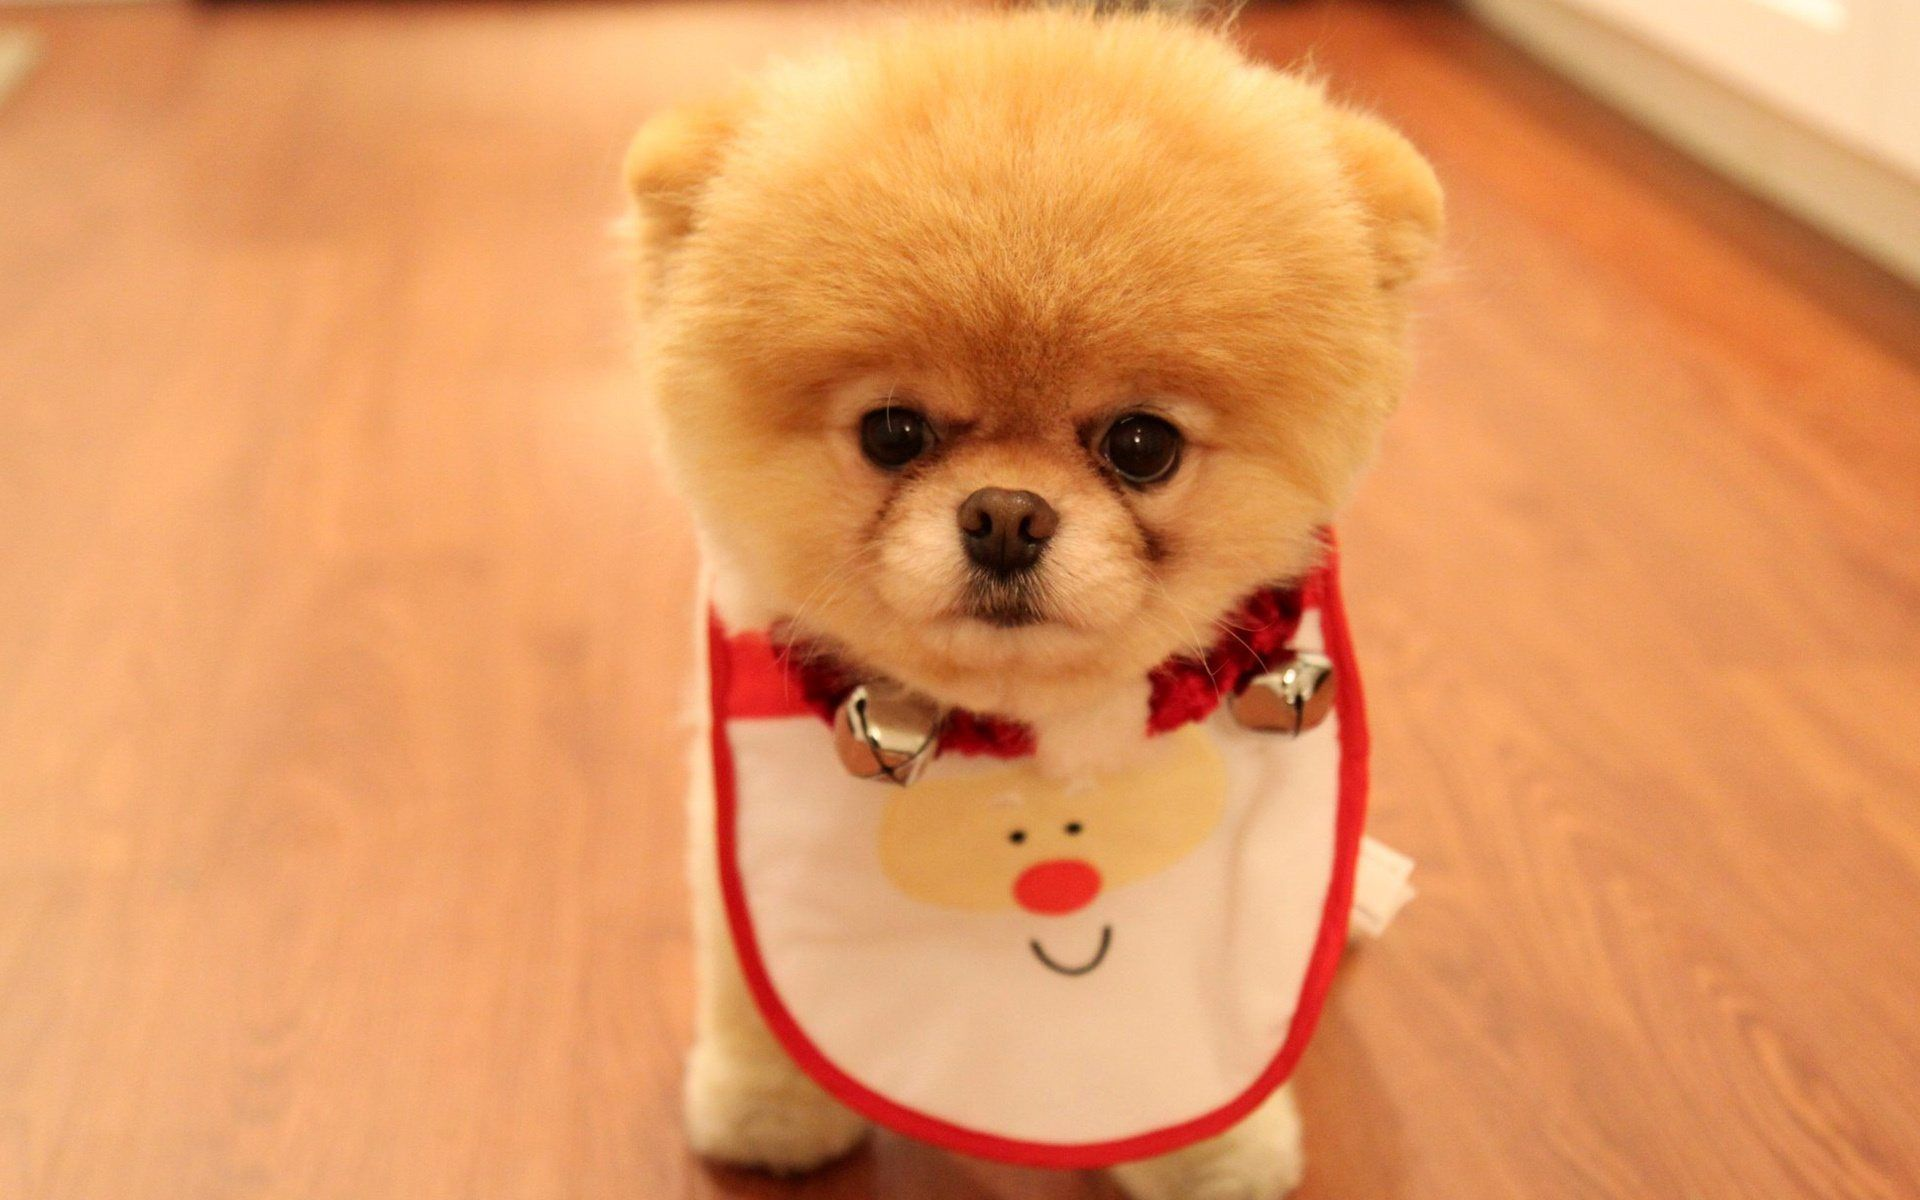 Wallpaper Cute Puppy As Christmas Present Pomeranian Breed Dog Dog Eyes Wallpapers Dog Download Cute Animals Cute Dogs Boo The Cutest Dog